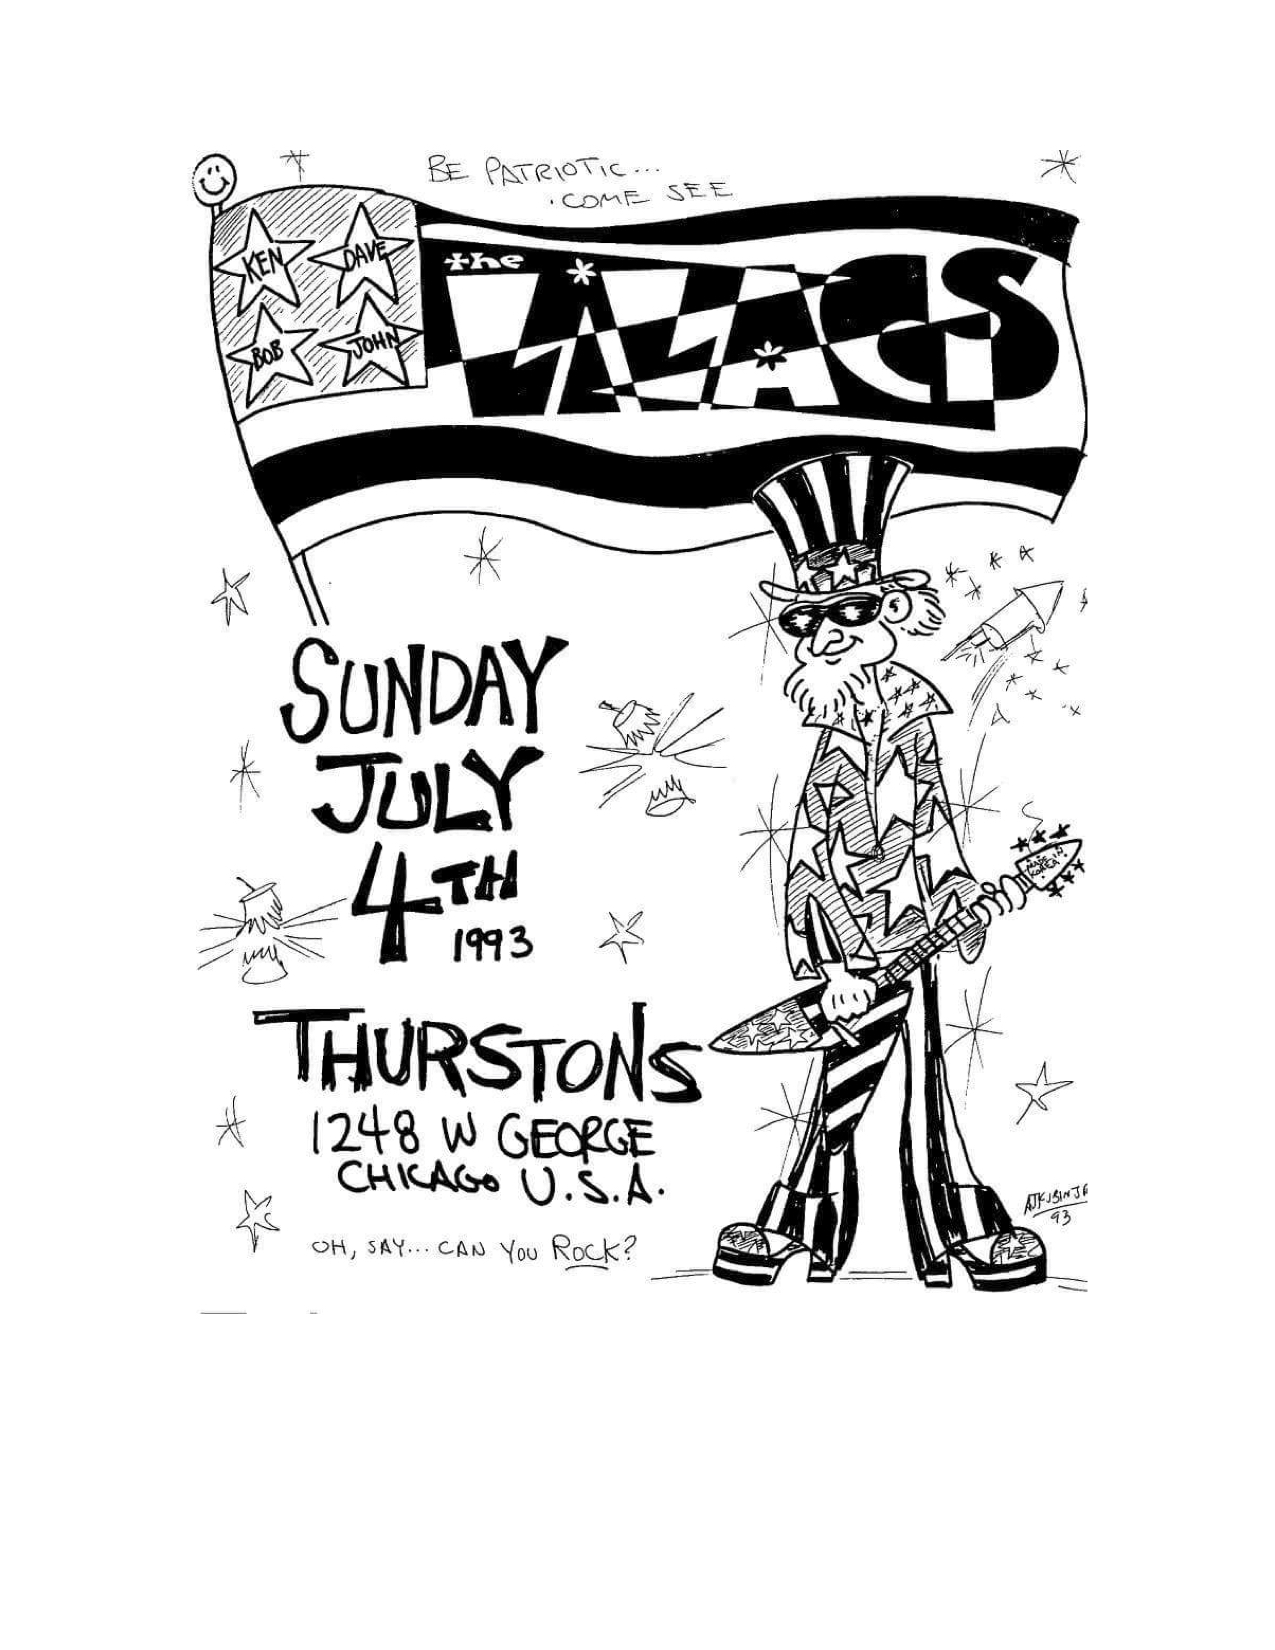 The Lilacs Poster 32 (Thurston's 4th of July).jpg